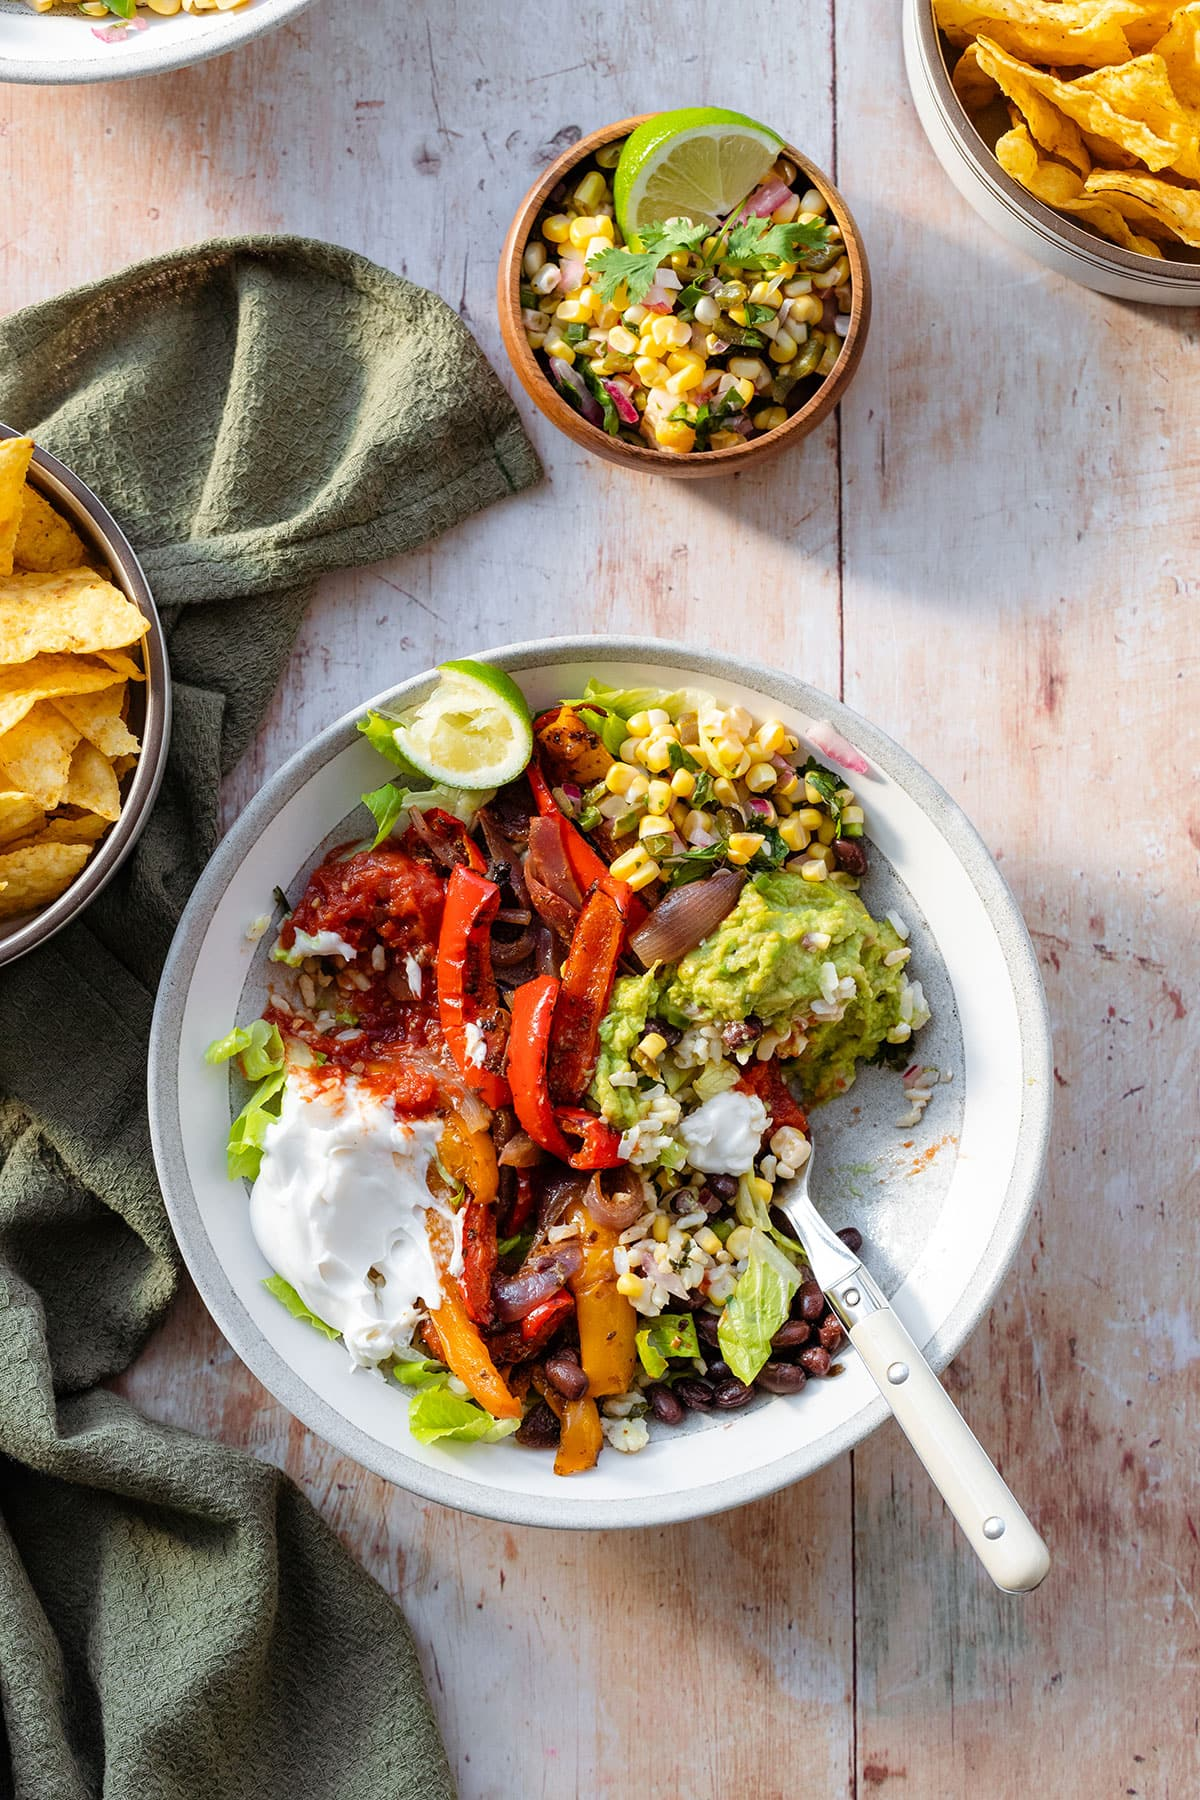 A photo of veggie burrito bowls in a grey bowls with a white rim on a light wooden background with a green kitchen towel on the left and a small bowl with corn salsa above the bowl in the middle. In the bowl there is brown rice, corn salsa, tomato salsa, sour cream, guacamole, black beans, and roasted peppers.